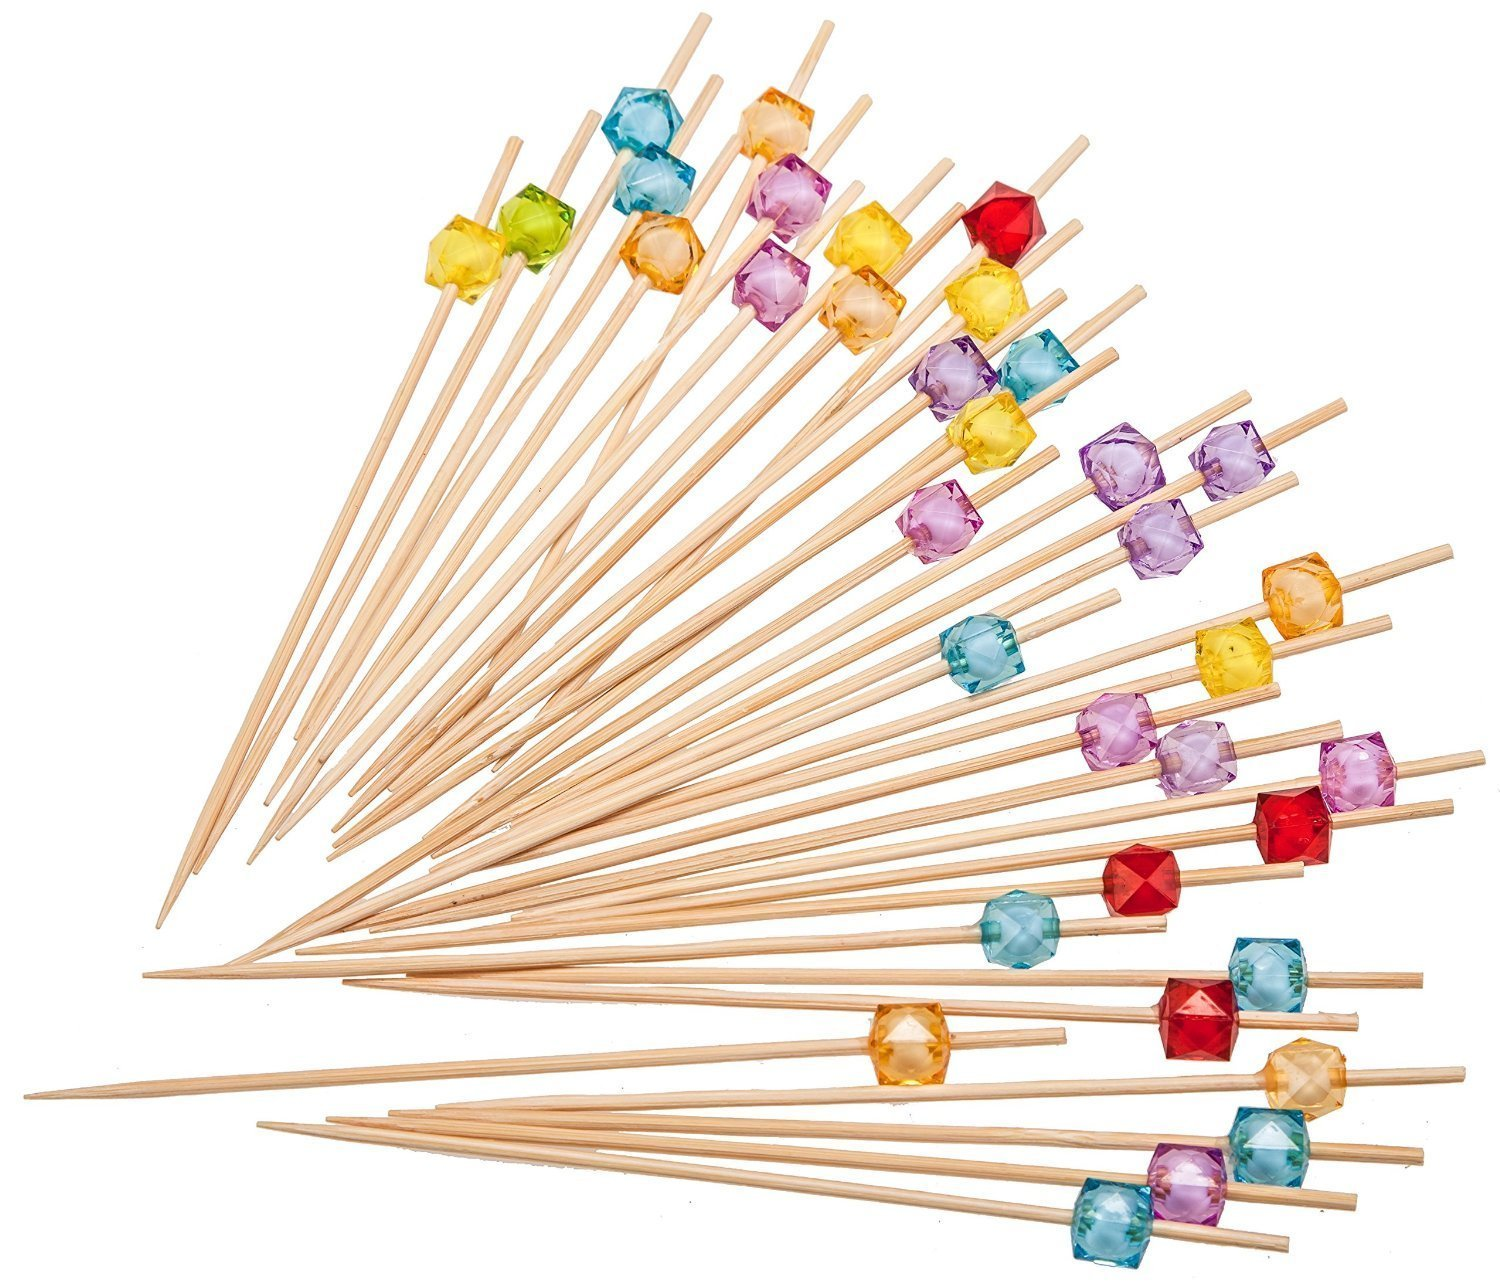 """Putwo Cocktail Picks Bamboo Handmade Appetizer Toothpicks 4.7/"""" 100ct Assorted Color in Rose Shape"""